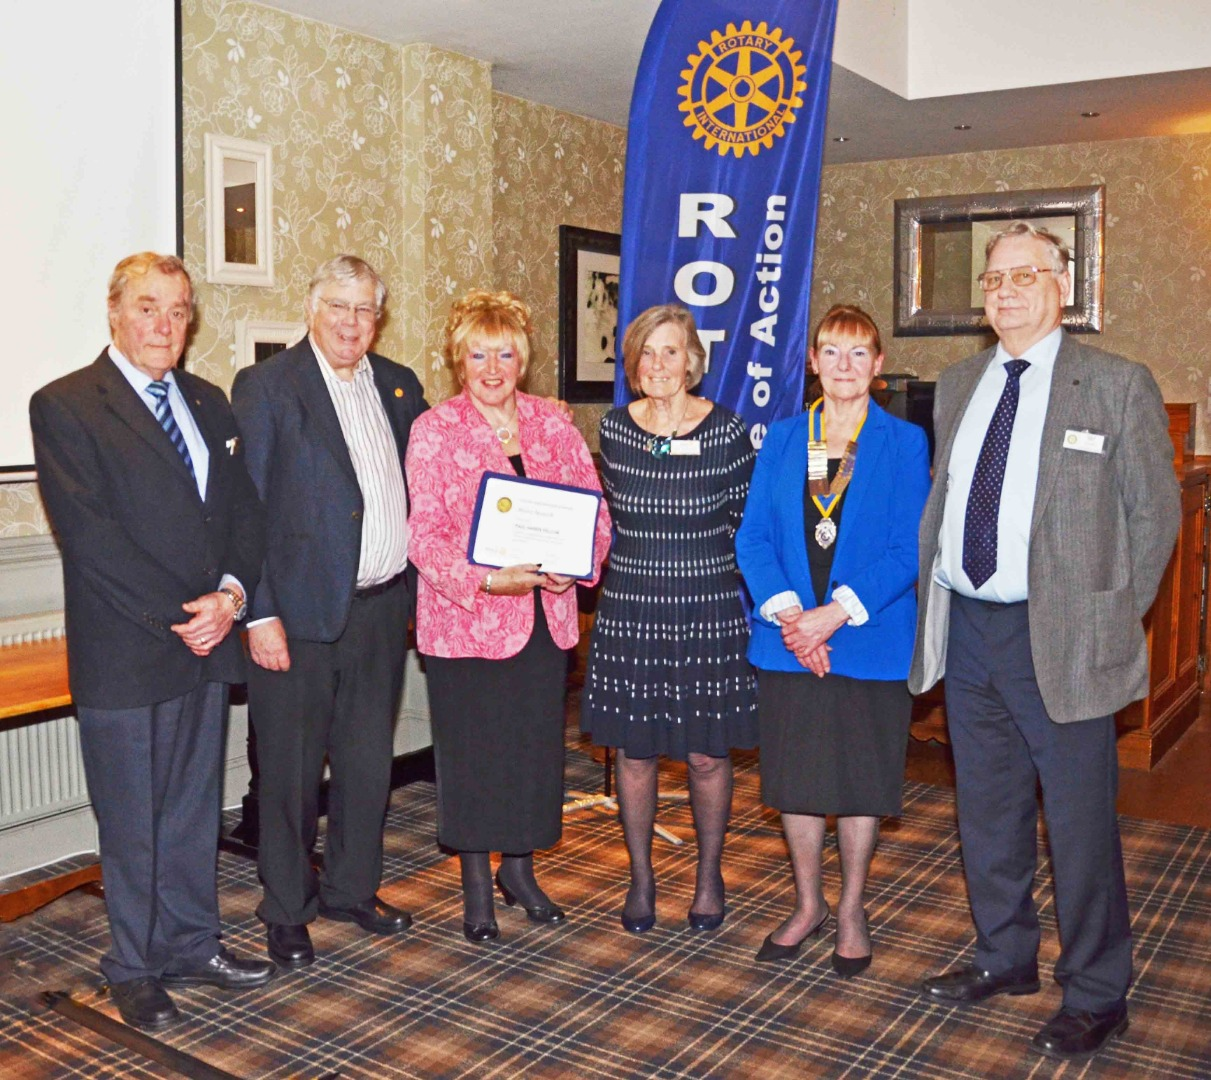 ROTARY AWARD FOR MOIRA BESWICK CHAIR OF THE ROSSENDALE TRUST